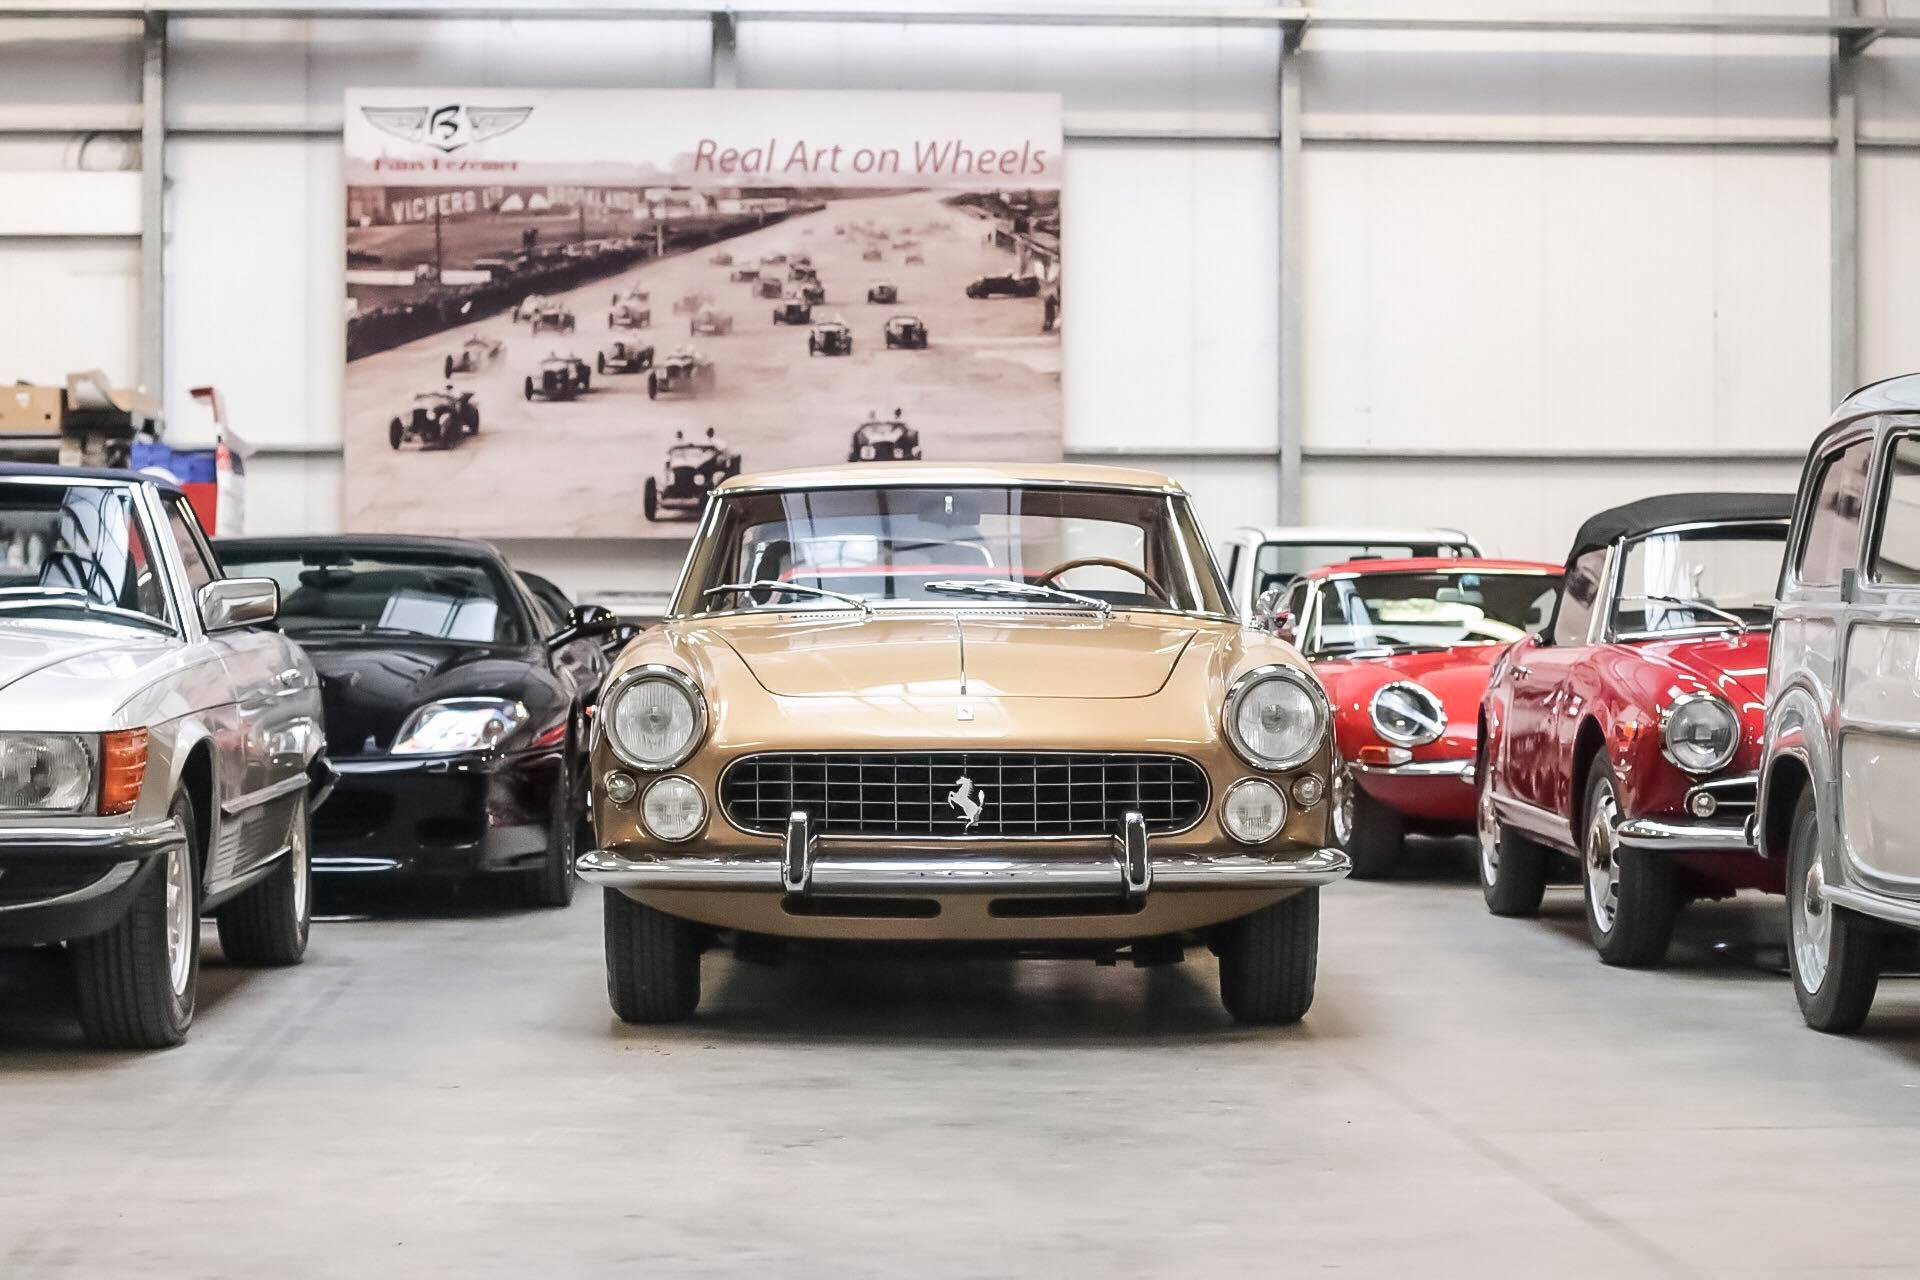 Real Art On Wheels | Interclassics Maastricht 2018